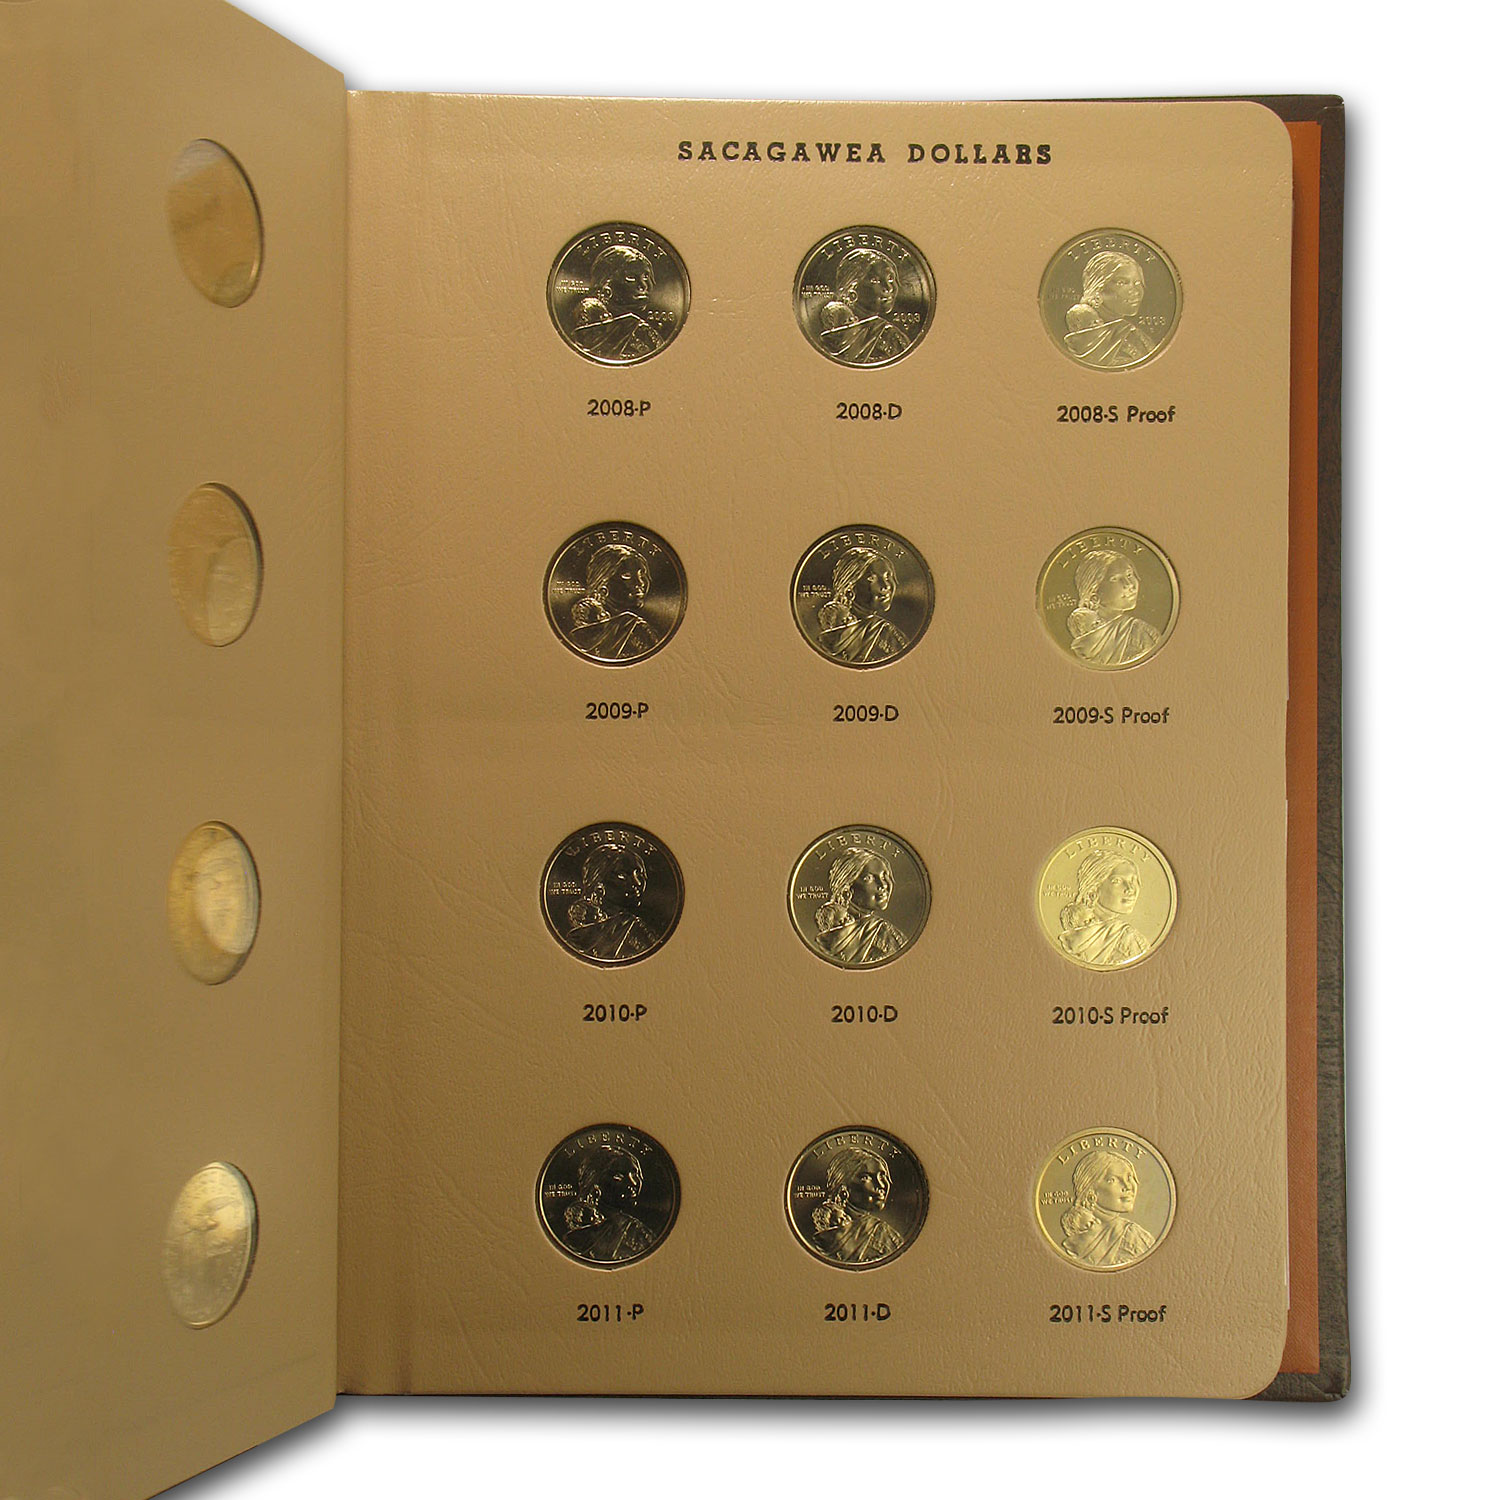 2000-2015 48-Coin Sacagawea Dollar Set BU/Proof (Dansco Album)